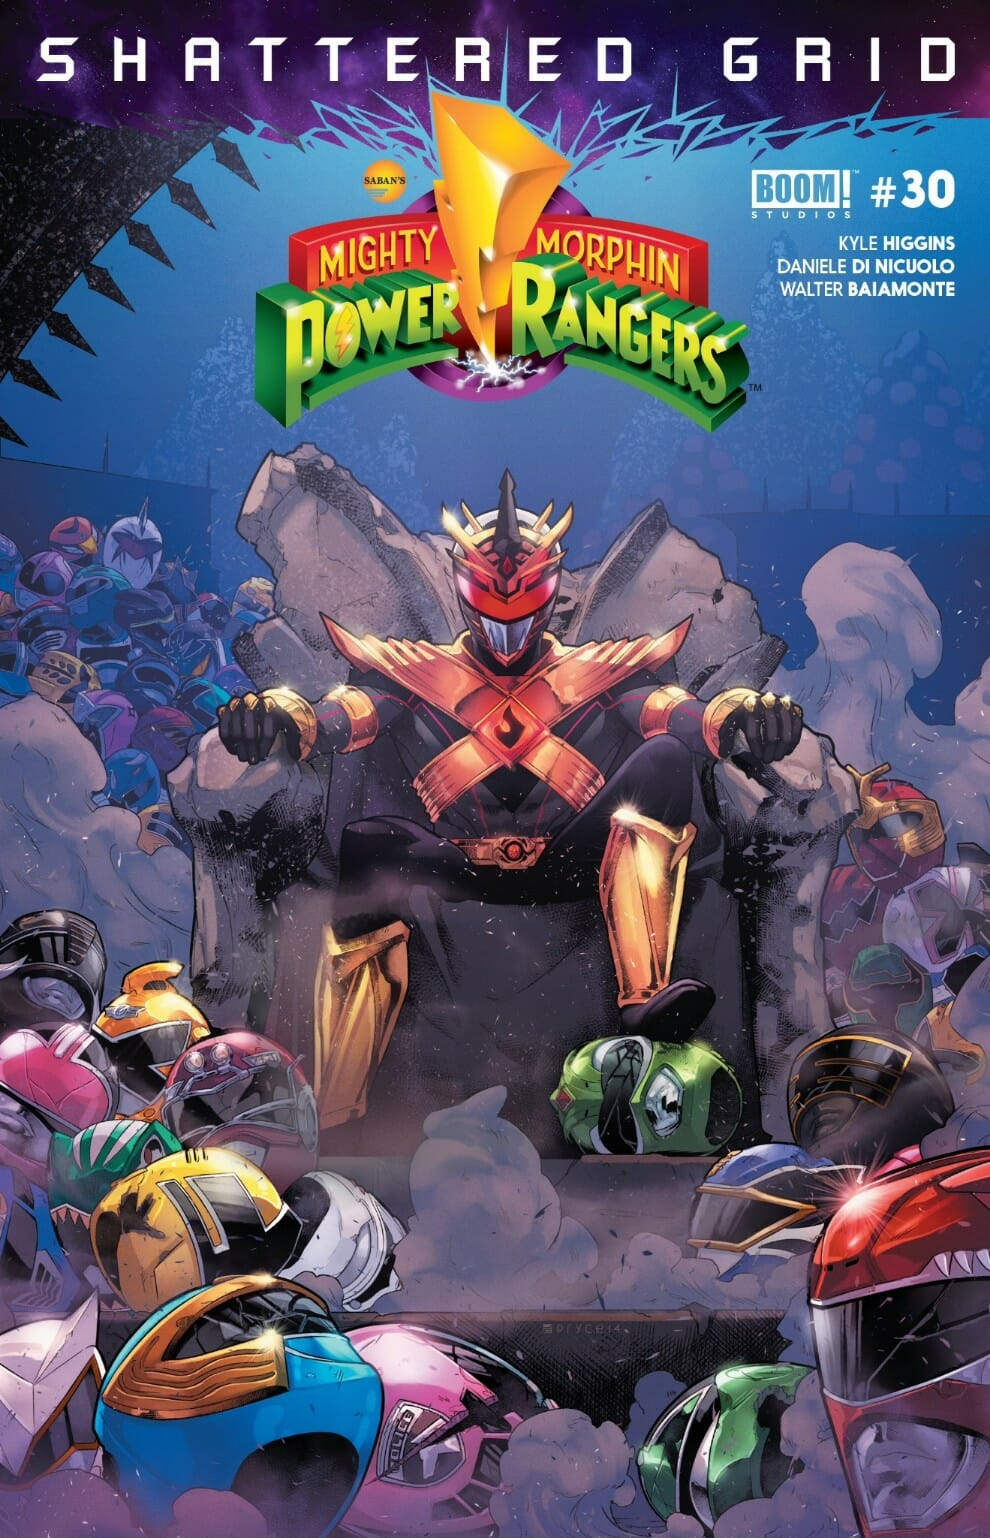 84fc7fb56 Mighty Morphin Power Rangers #30 (Shattered Grid) Review